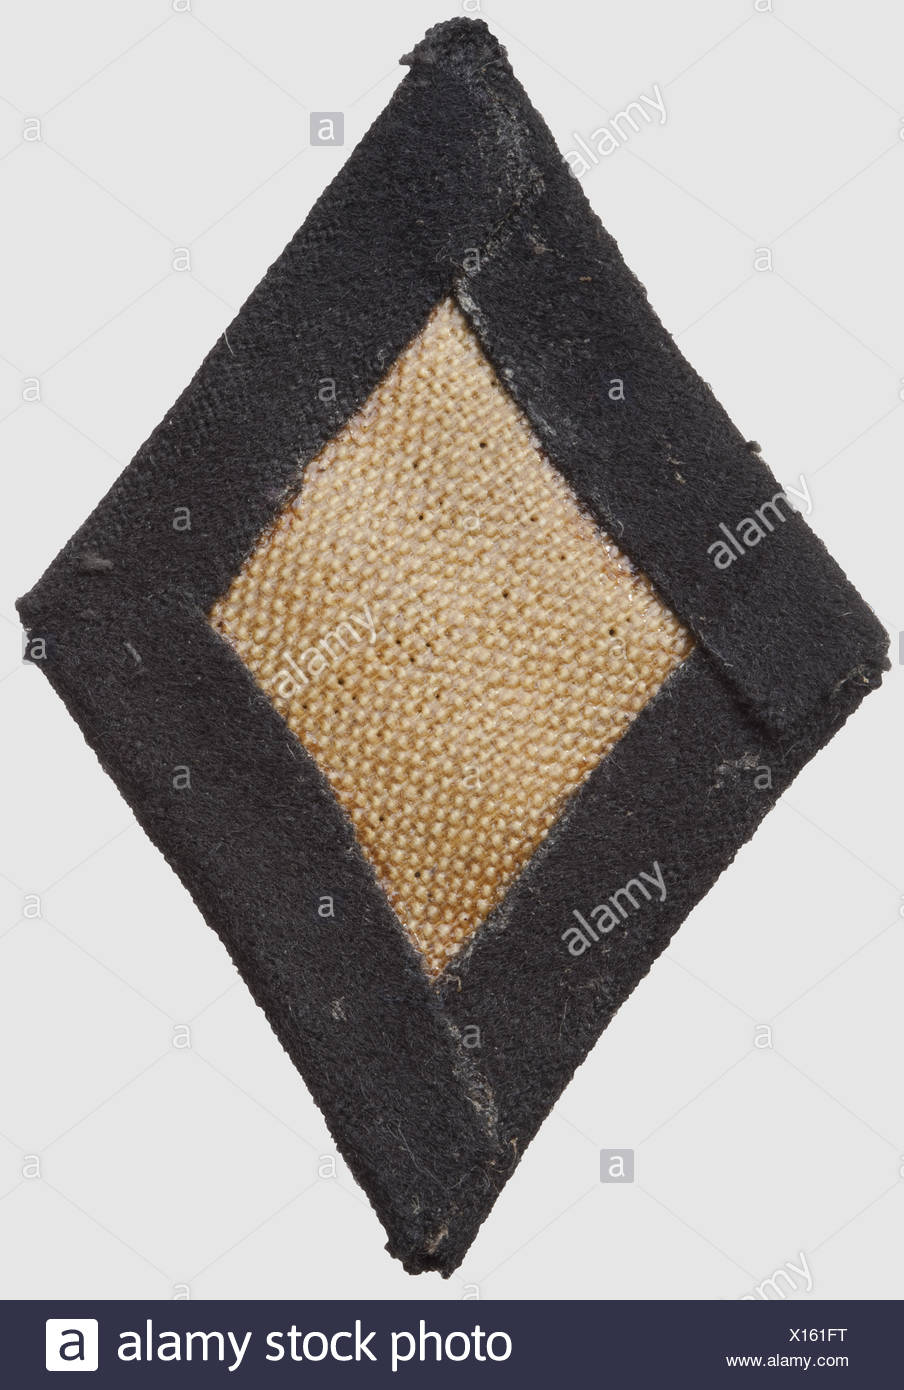 SS / SD sleeve lozenge, hand-embroidered version on black cloth, historic, historical, 1930s, 1930s, 20th century, SS, Schutzstaffel, NS, National Socialism, Nazism, Third Reich, German Reich, branch of service, branches of service, organisation, organization, organizations, organisations, object, objects, clipping, cut out, cut-out, cut-outs, insignia, symbol, symbols, equipment, uniform, uniforms, detail, details, Additional-Rights-Clearences-NA - Stock Image